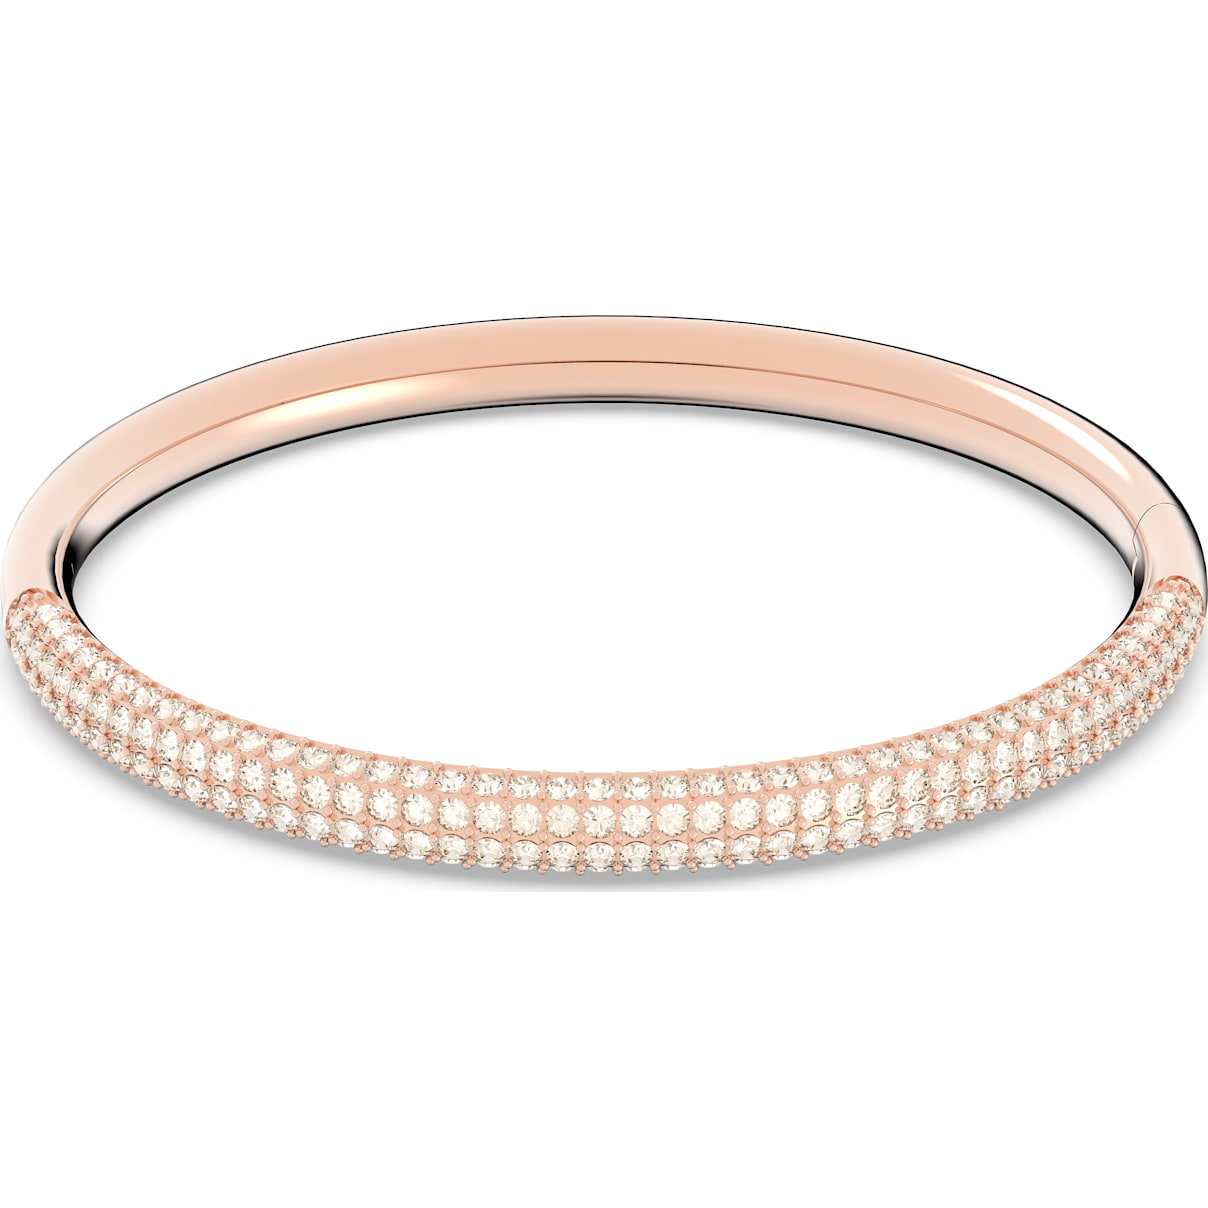 Swarovski Stone Bangle, White, Rose-gold tone plated